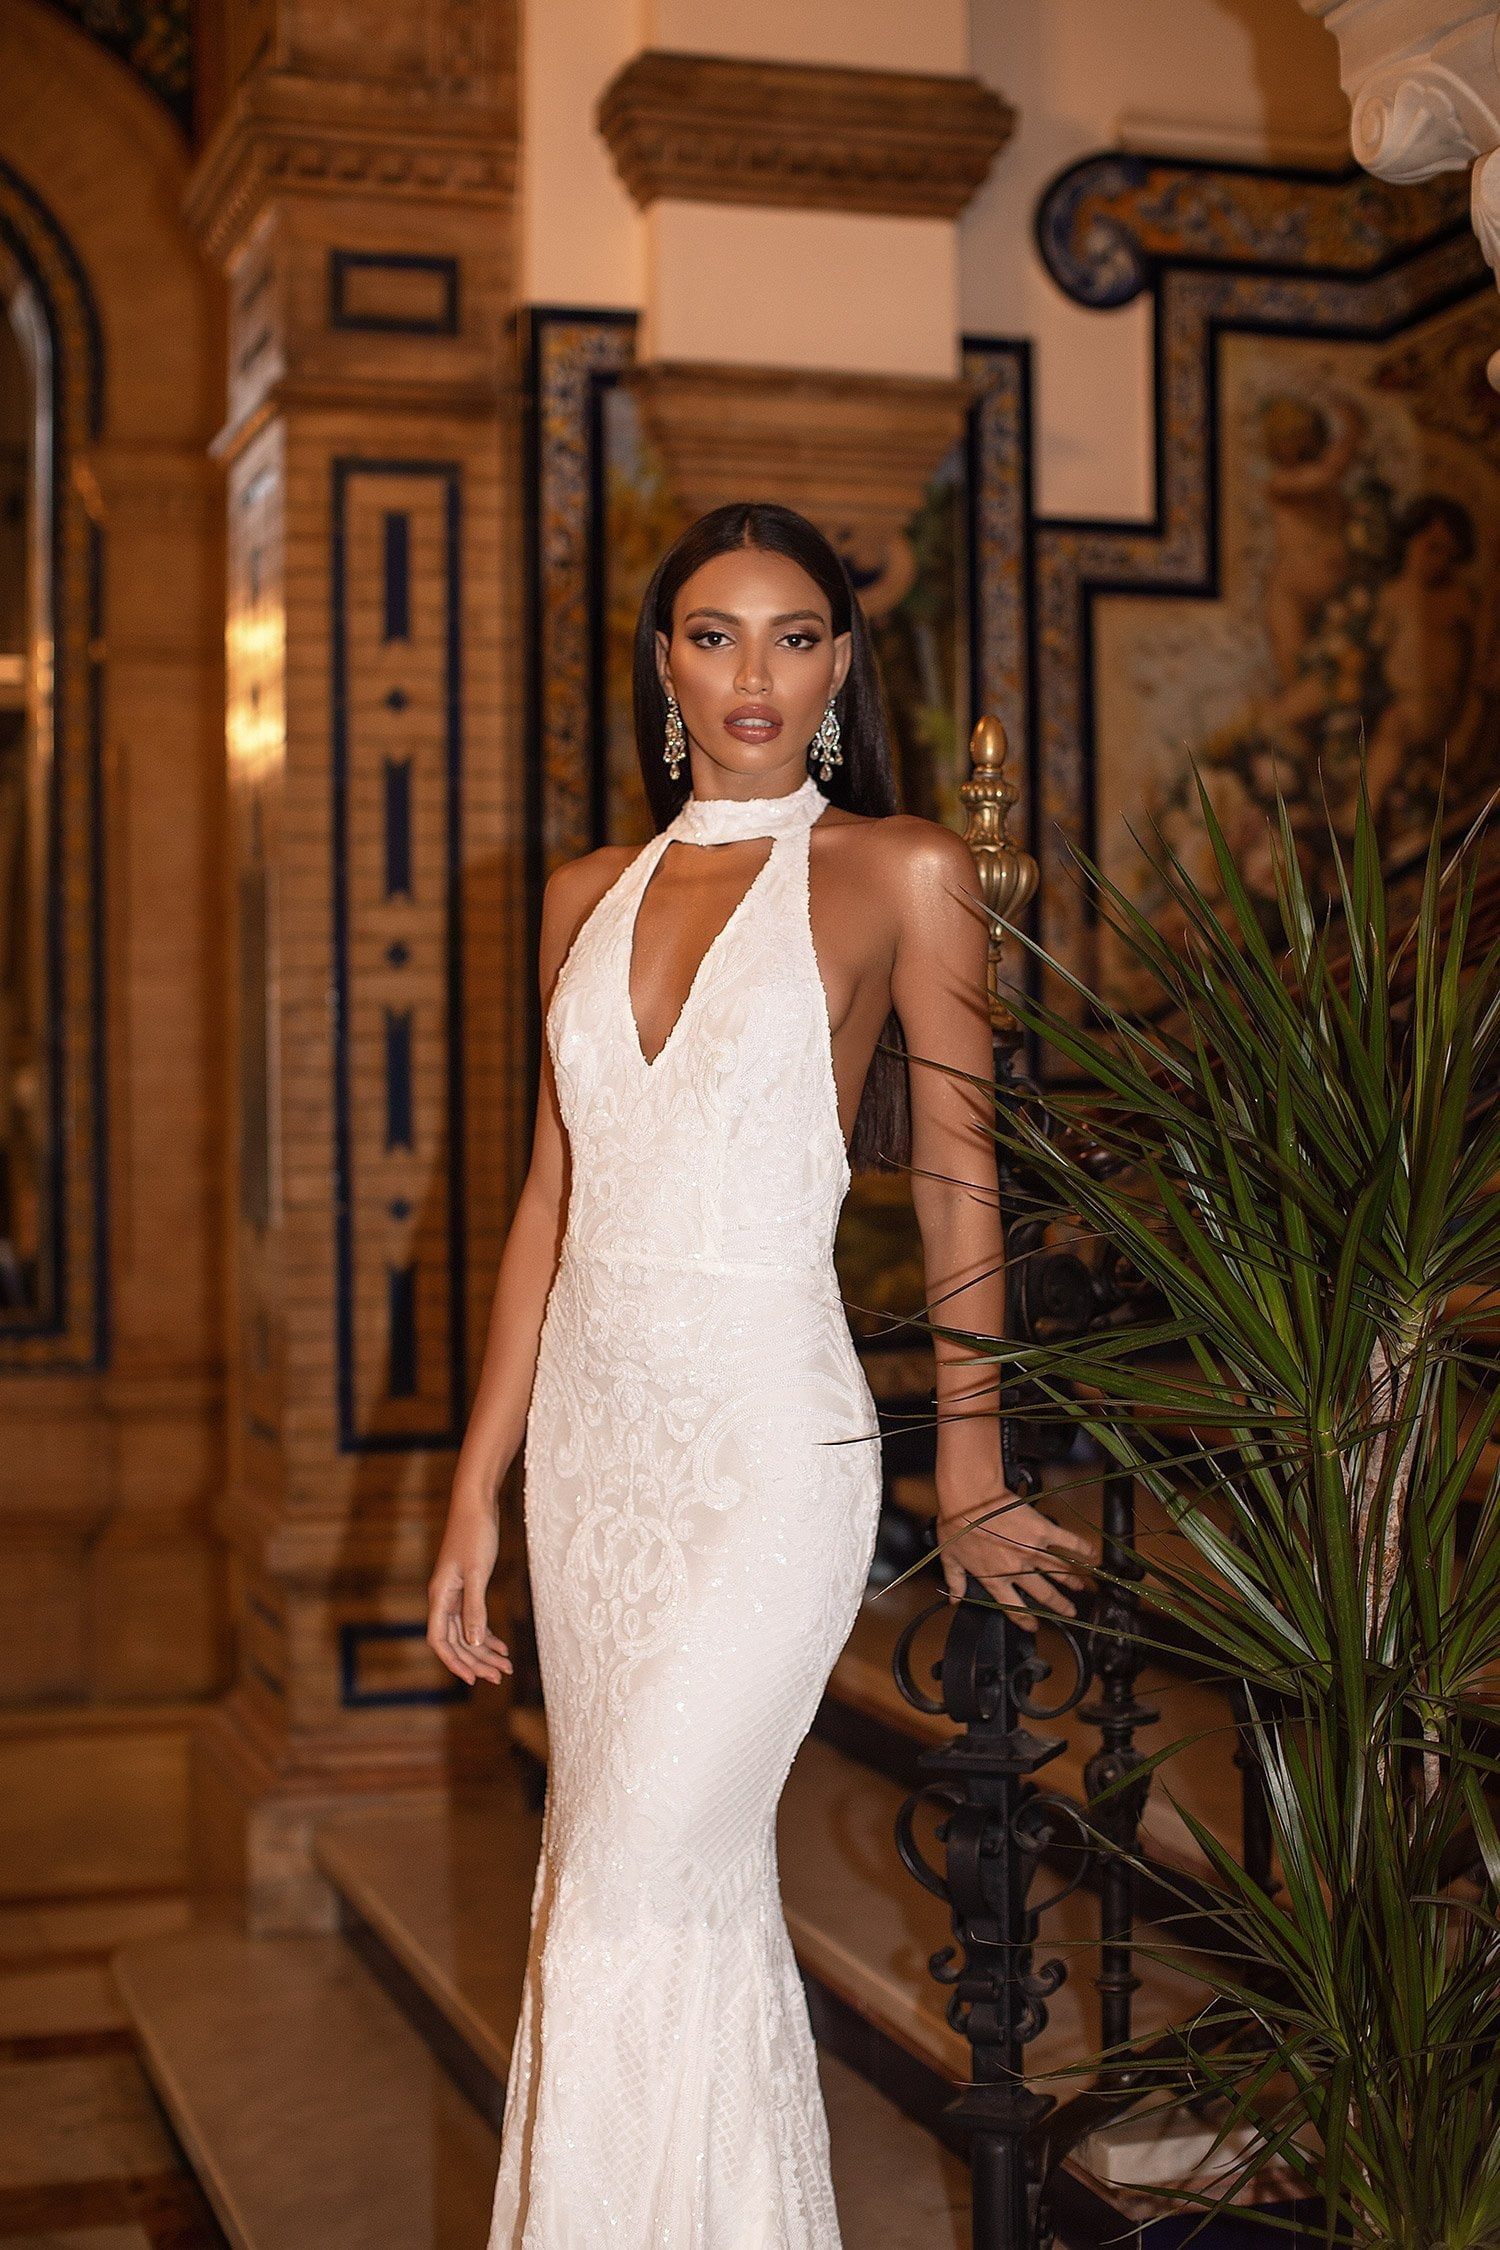 Jordyn - White Halter Plunge Neck Backless Sequin Gown with Train